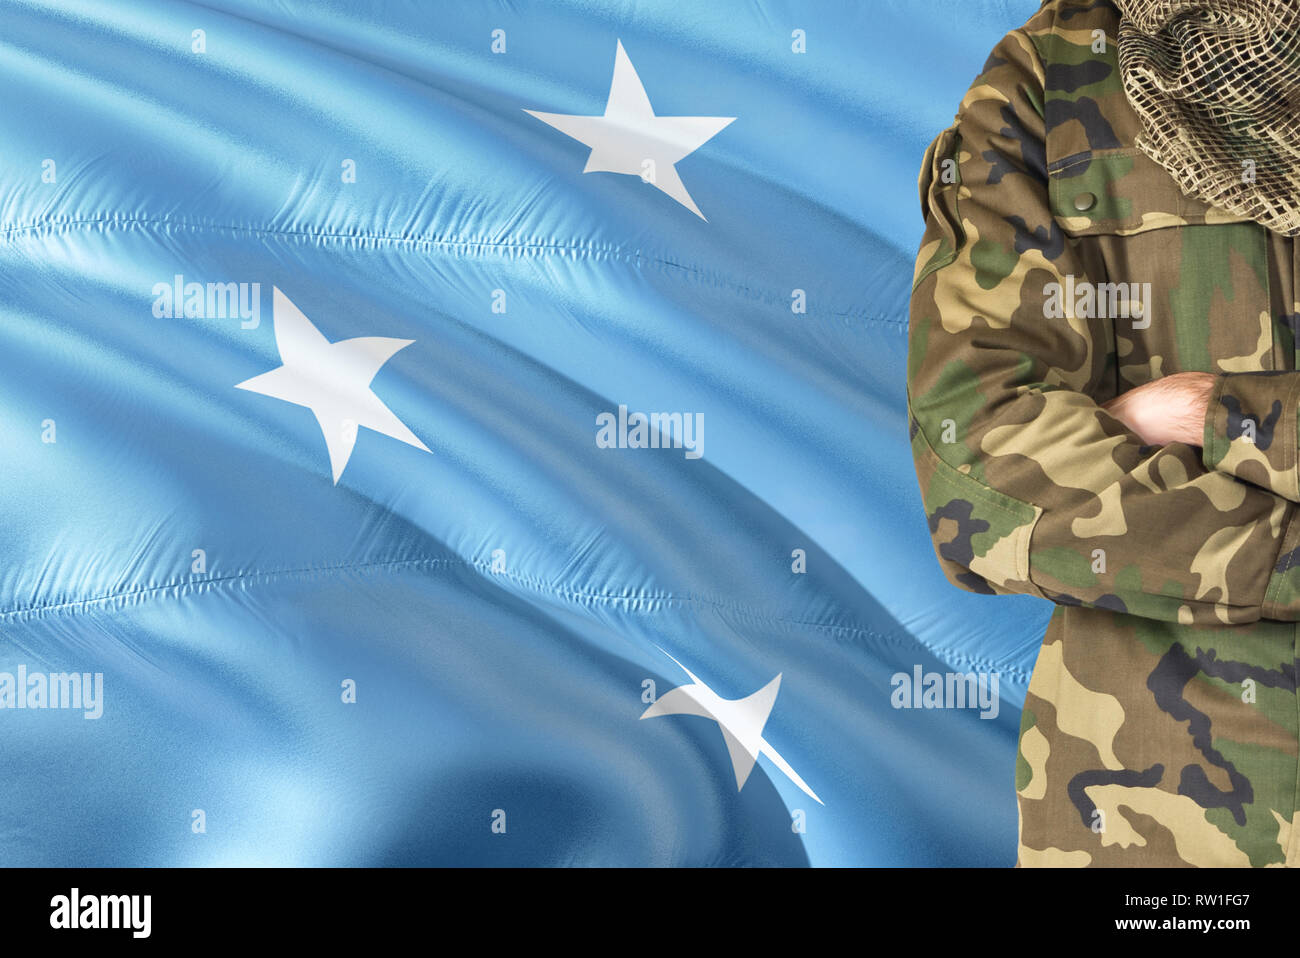 Crossed arms Micronesian soldier with national waving flag on background - Micronesia Military theme. - Stock Image